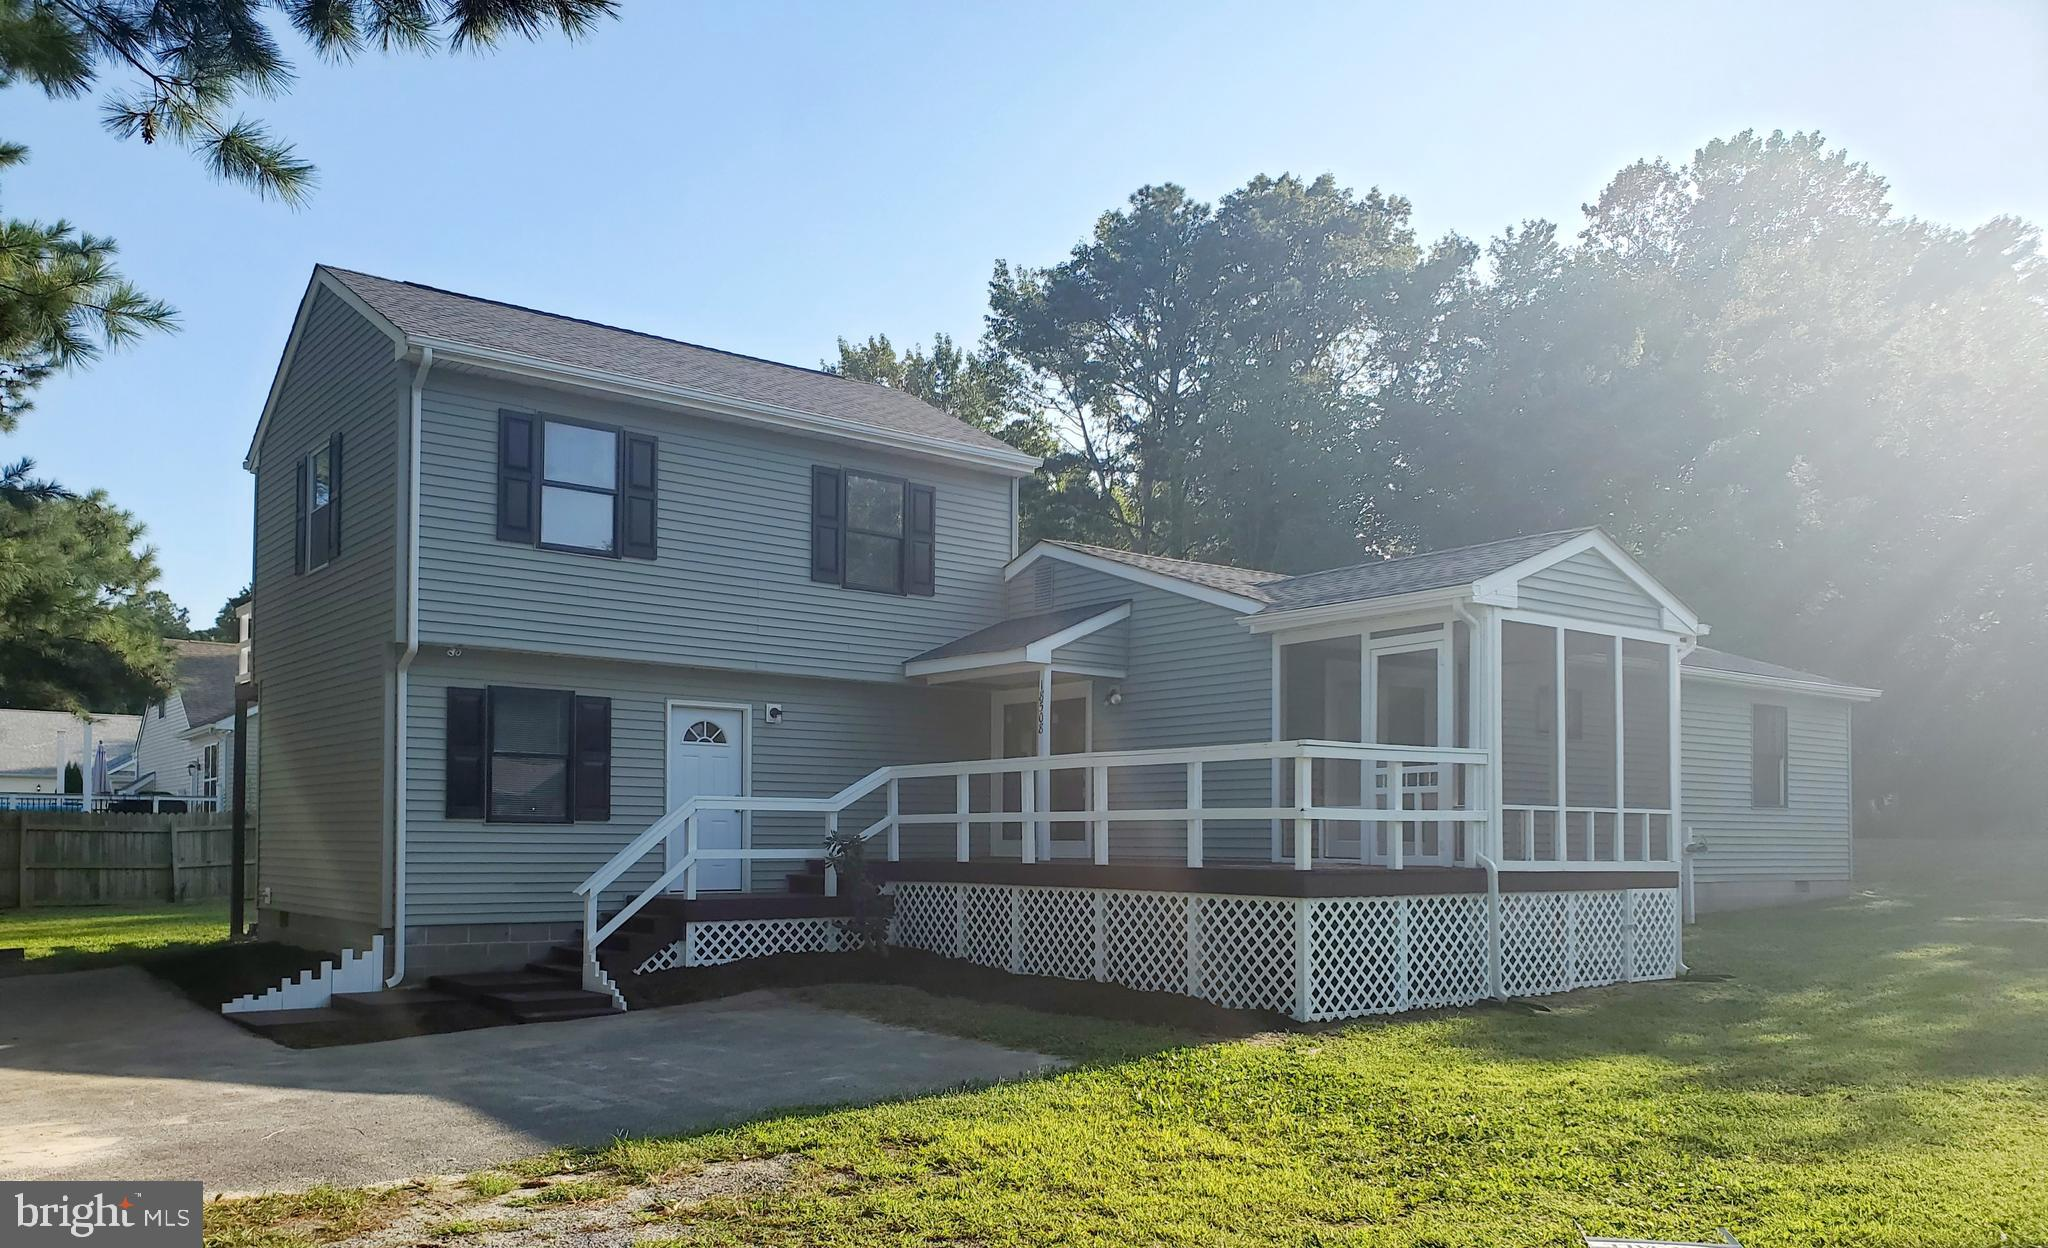 Check out this very unique property located in Lewes. Featuring 3 bed and 2 full baths, large wrap a